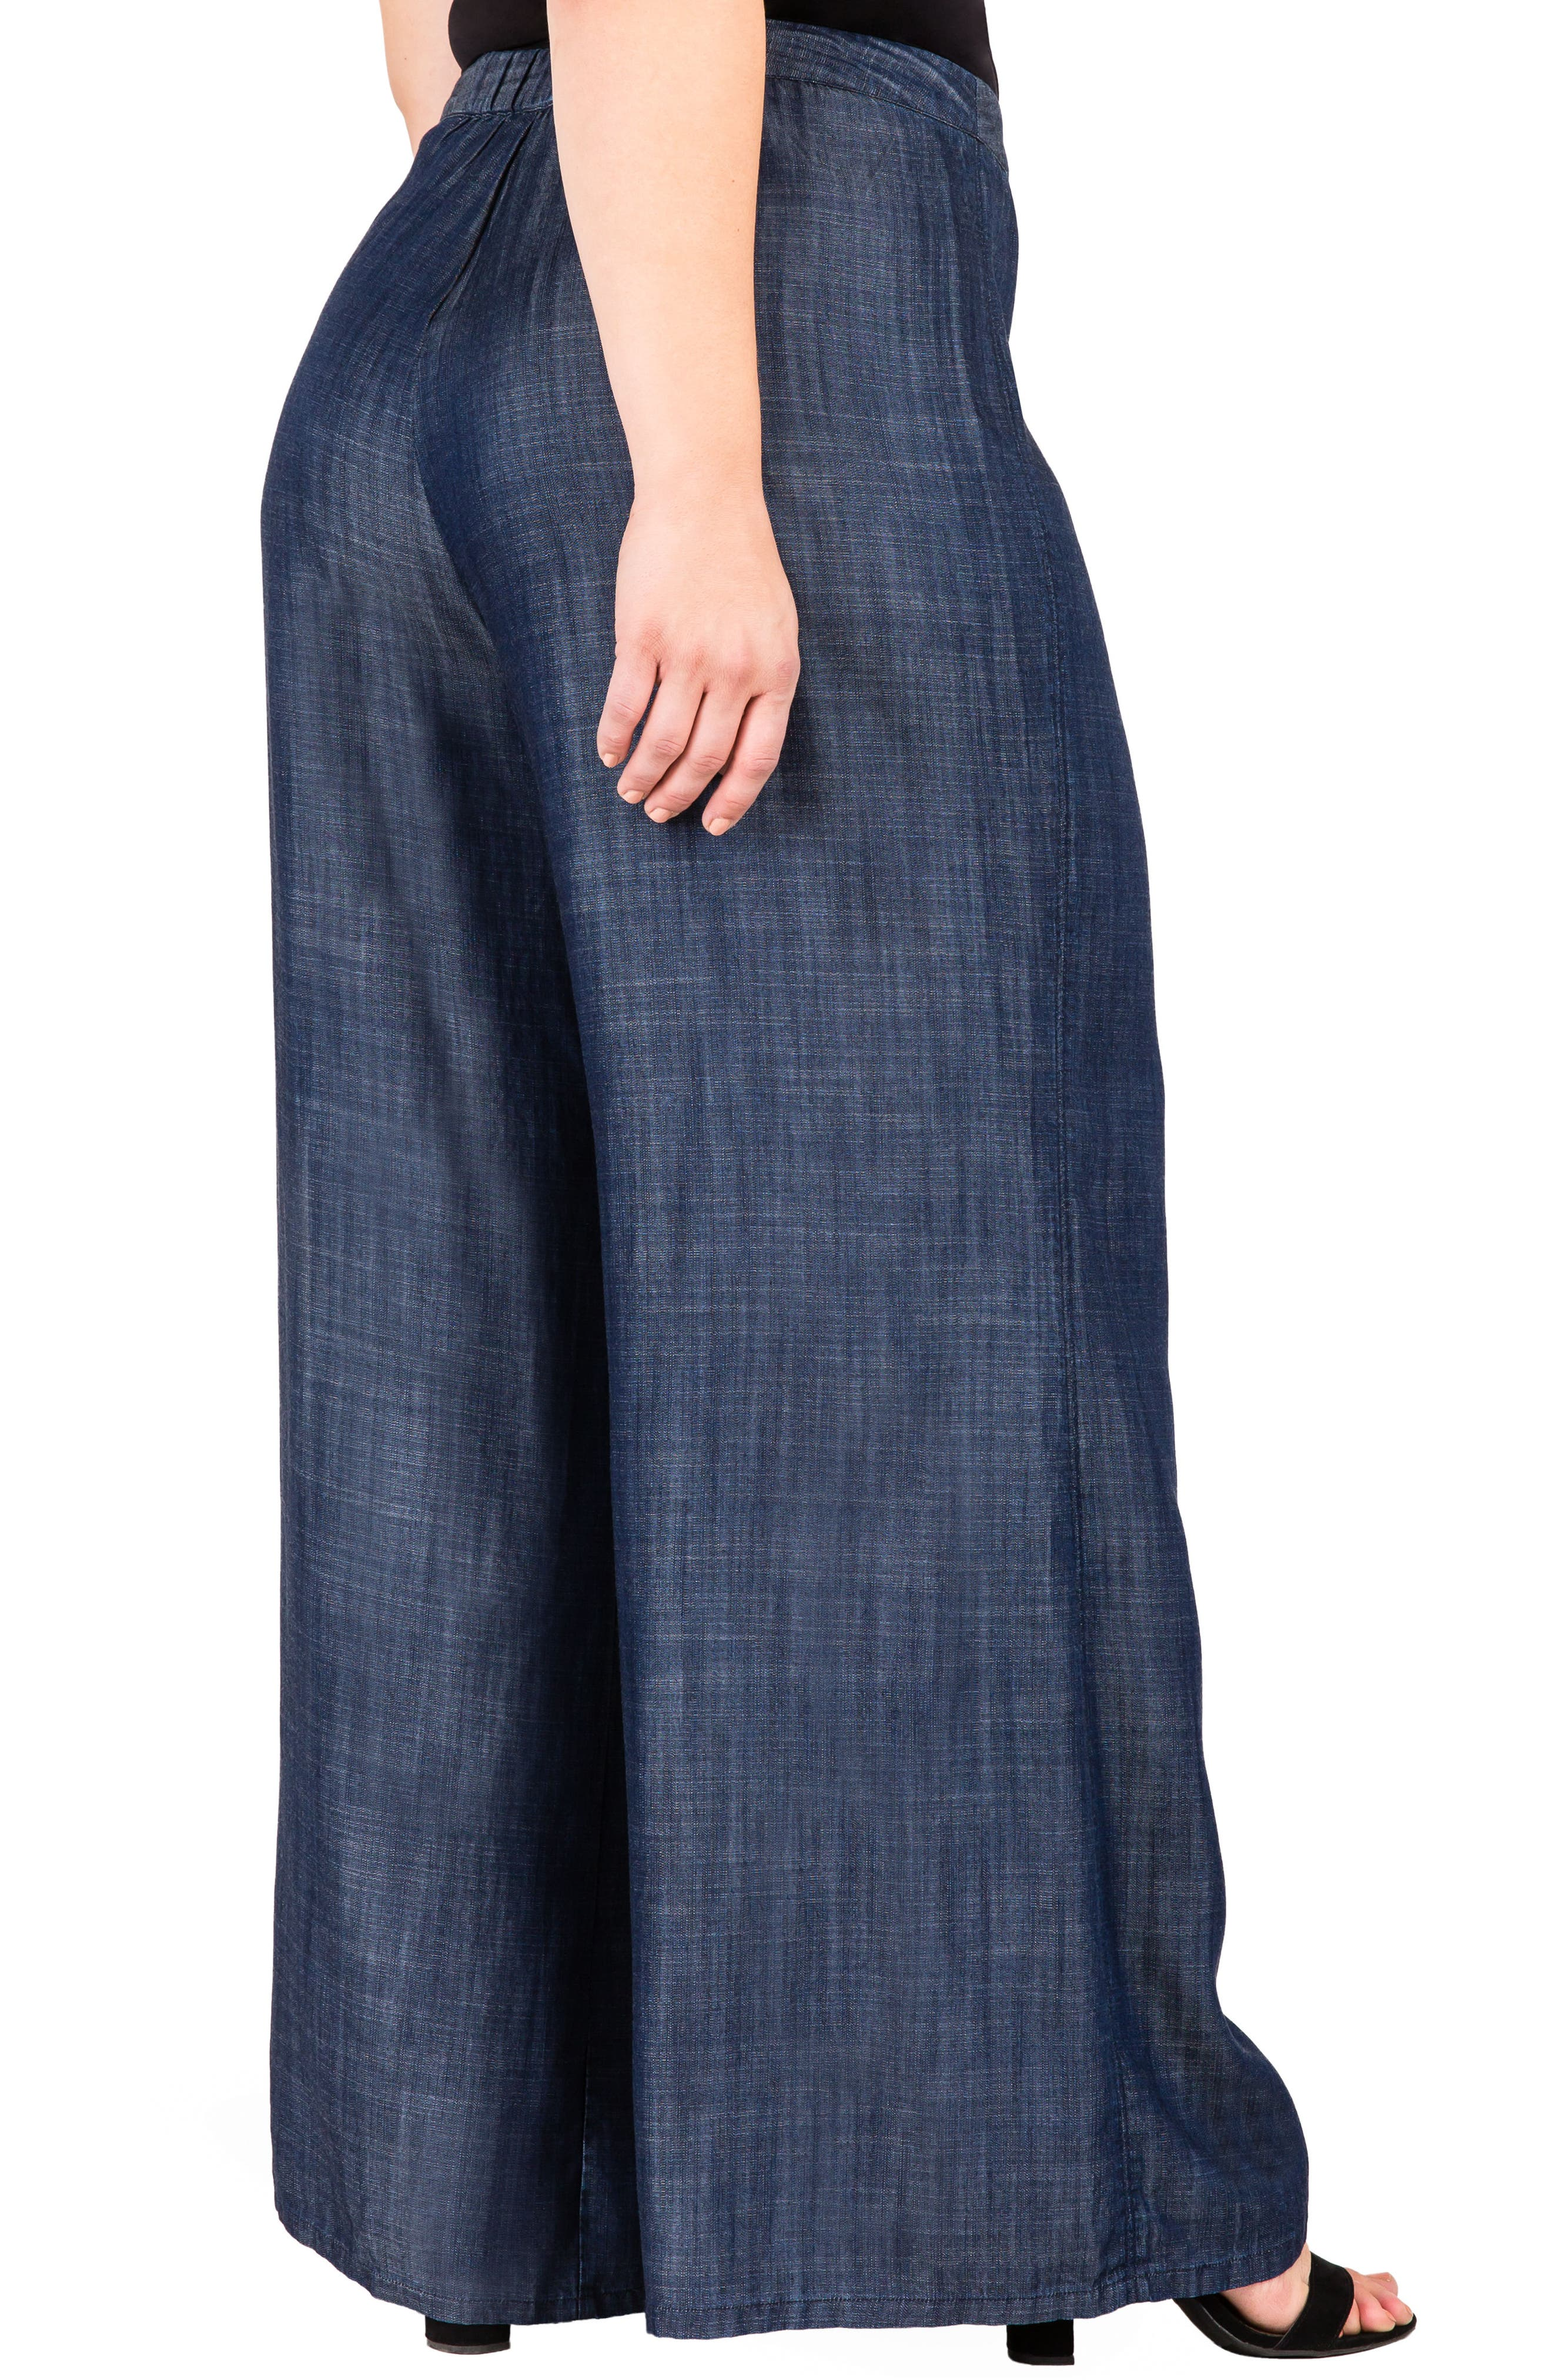 Olga Wide Leg Denim Pants,                             Alternate thumbnail 5, color,                             INDIGO